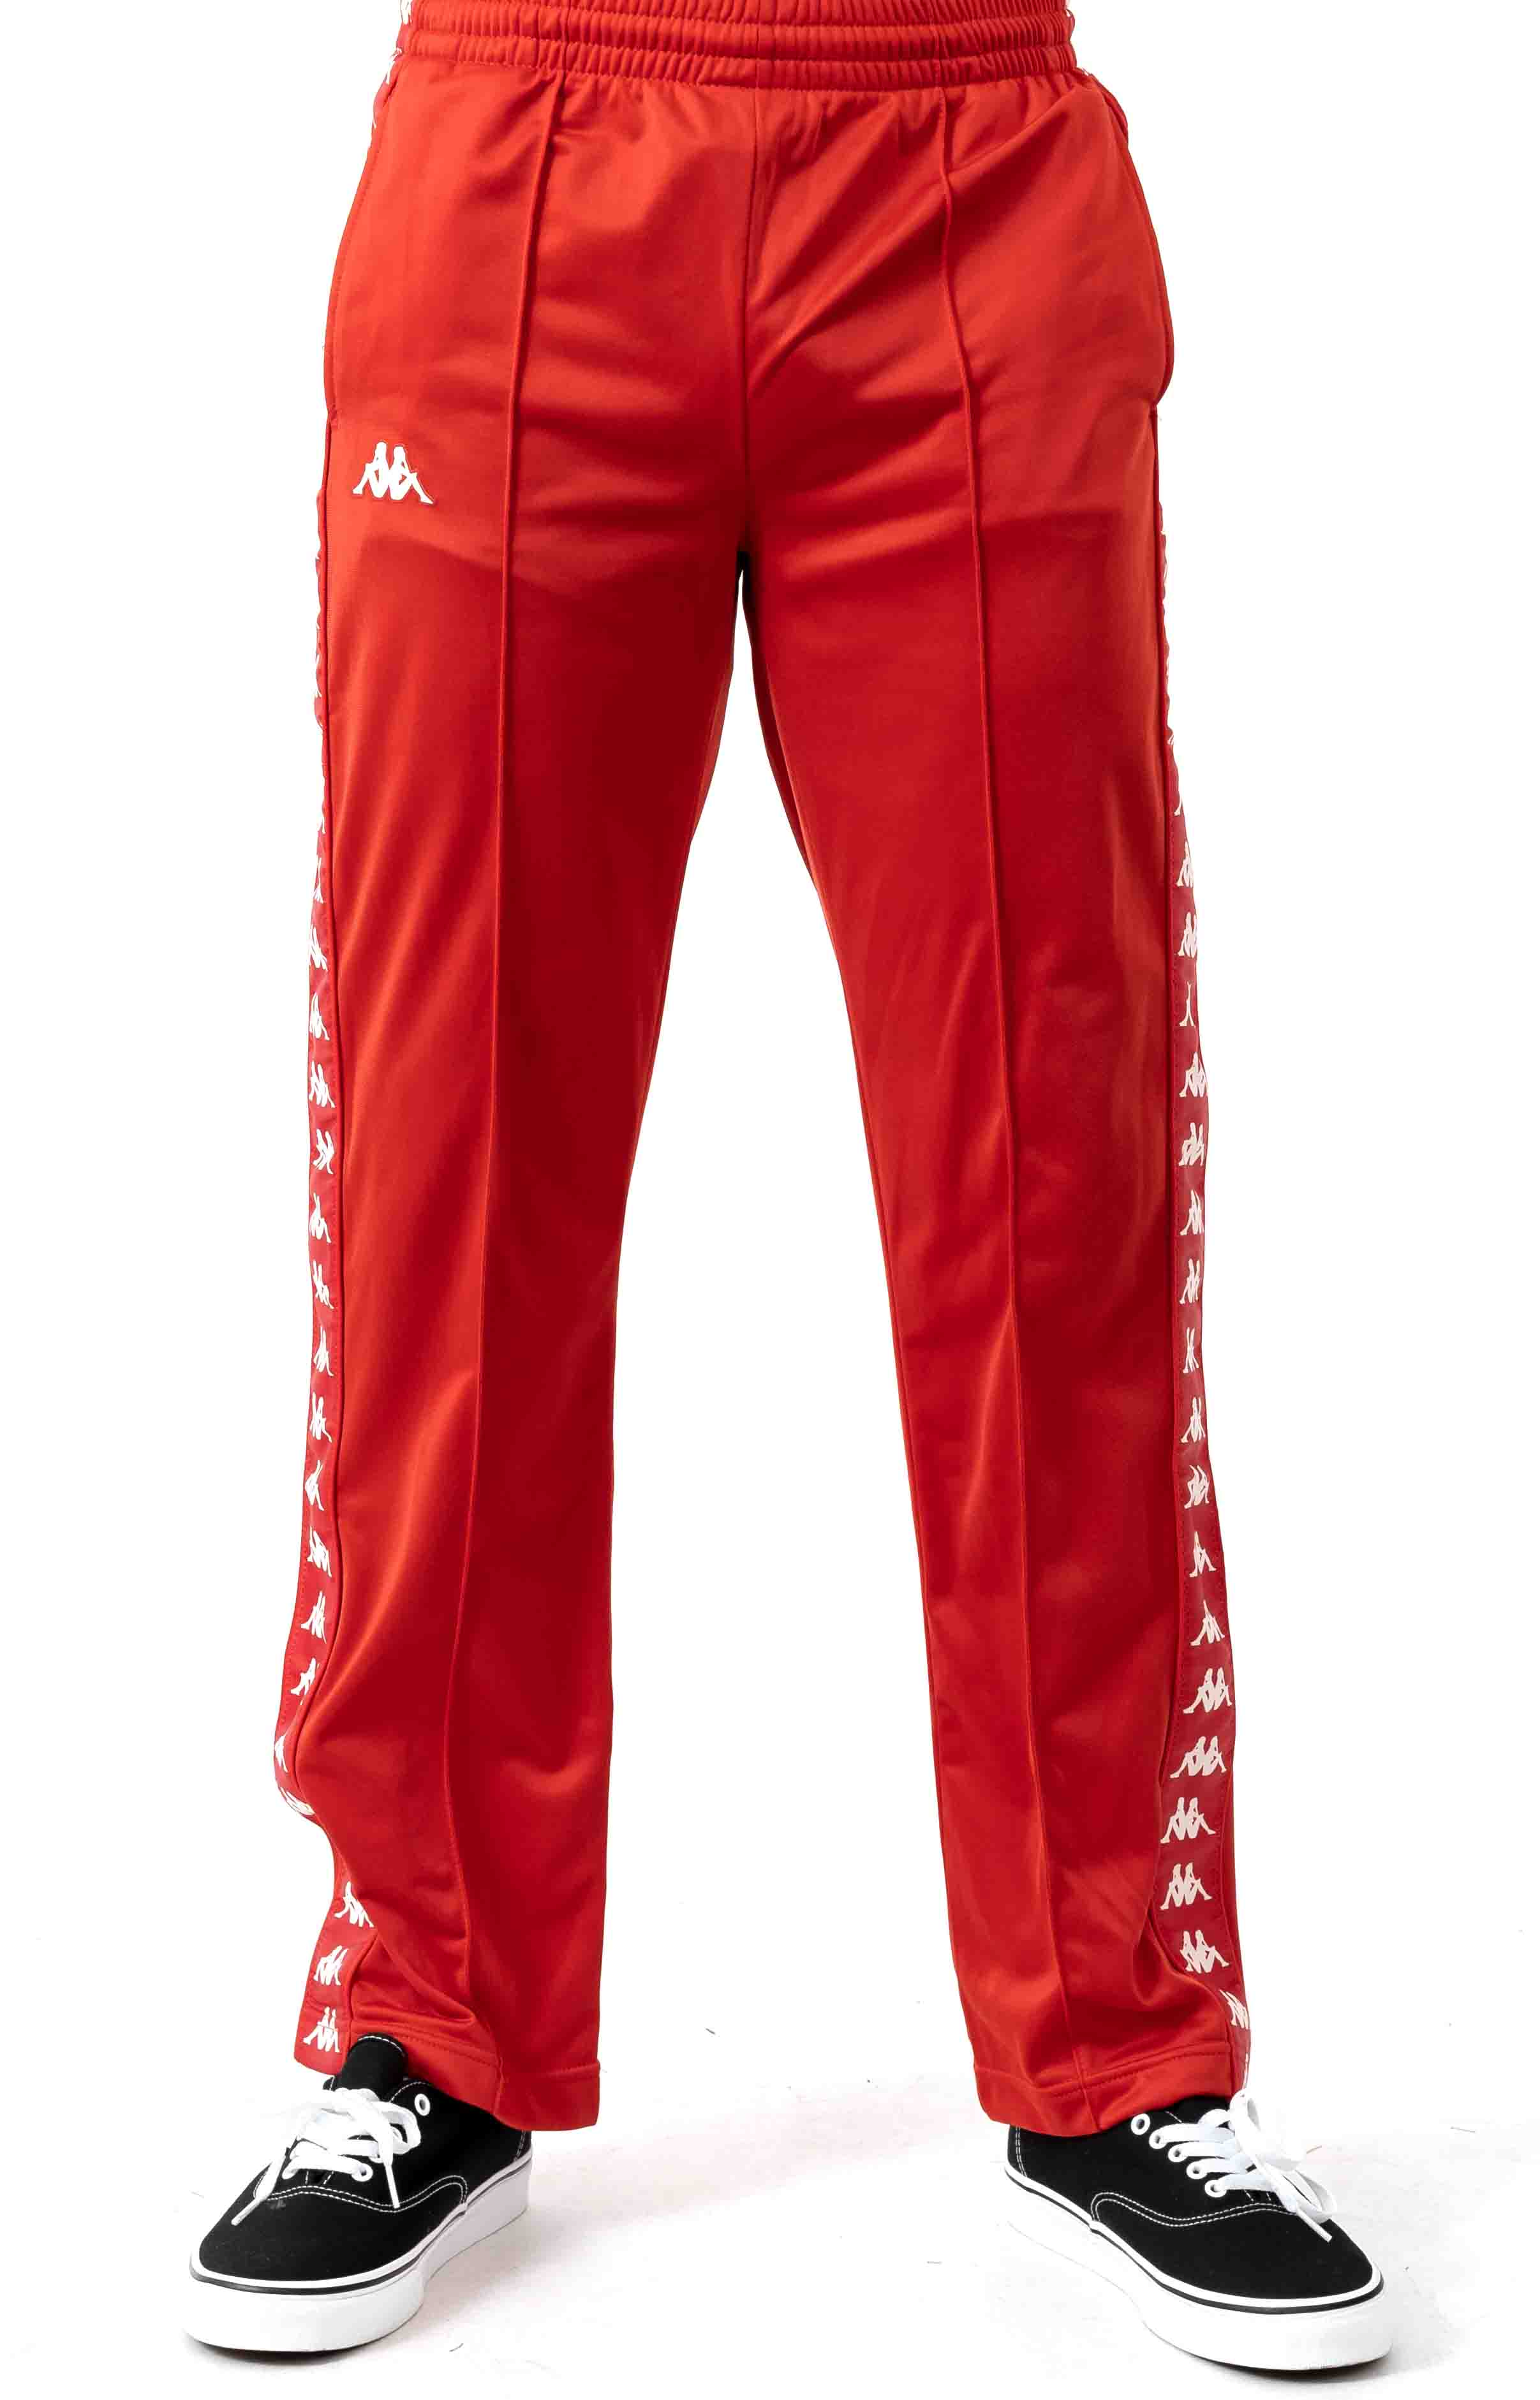 222 Banda Astoriazz Trackpant - Red/White 2